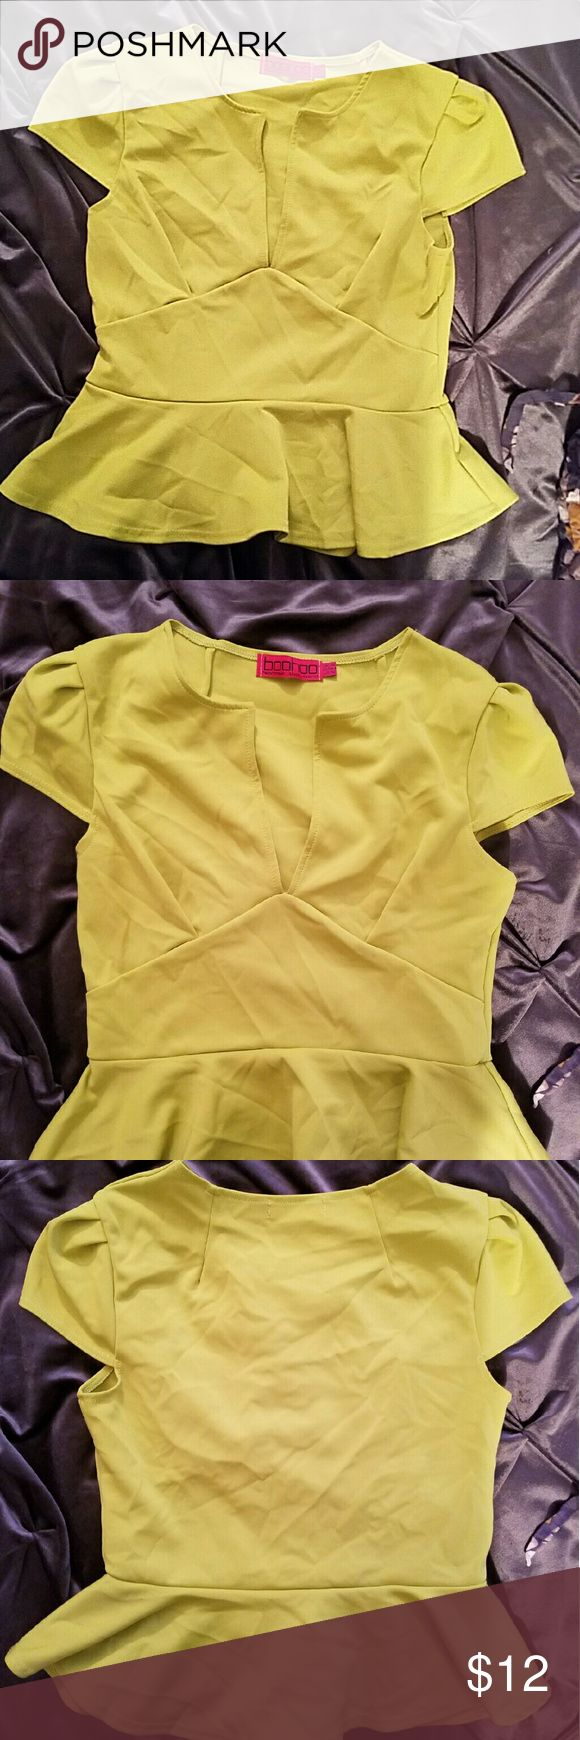 Boohoo Peplum Neon Top Size-12 Neon Green Minor blemish seen in 4th pic Only can see it if you really stare hard Only Worn Twice Boohoo Tops Blouses